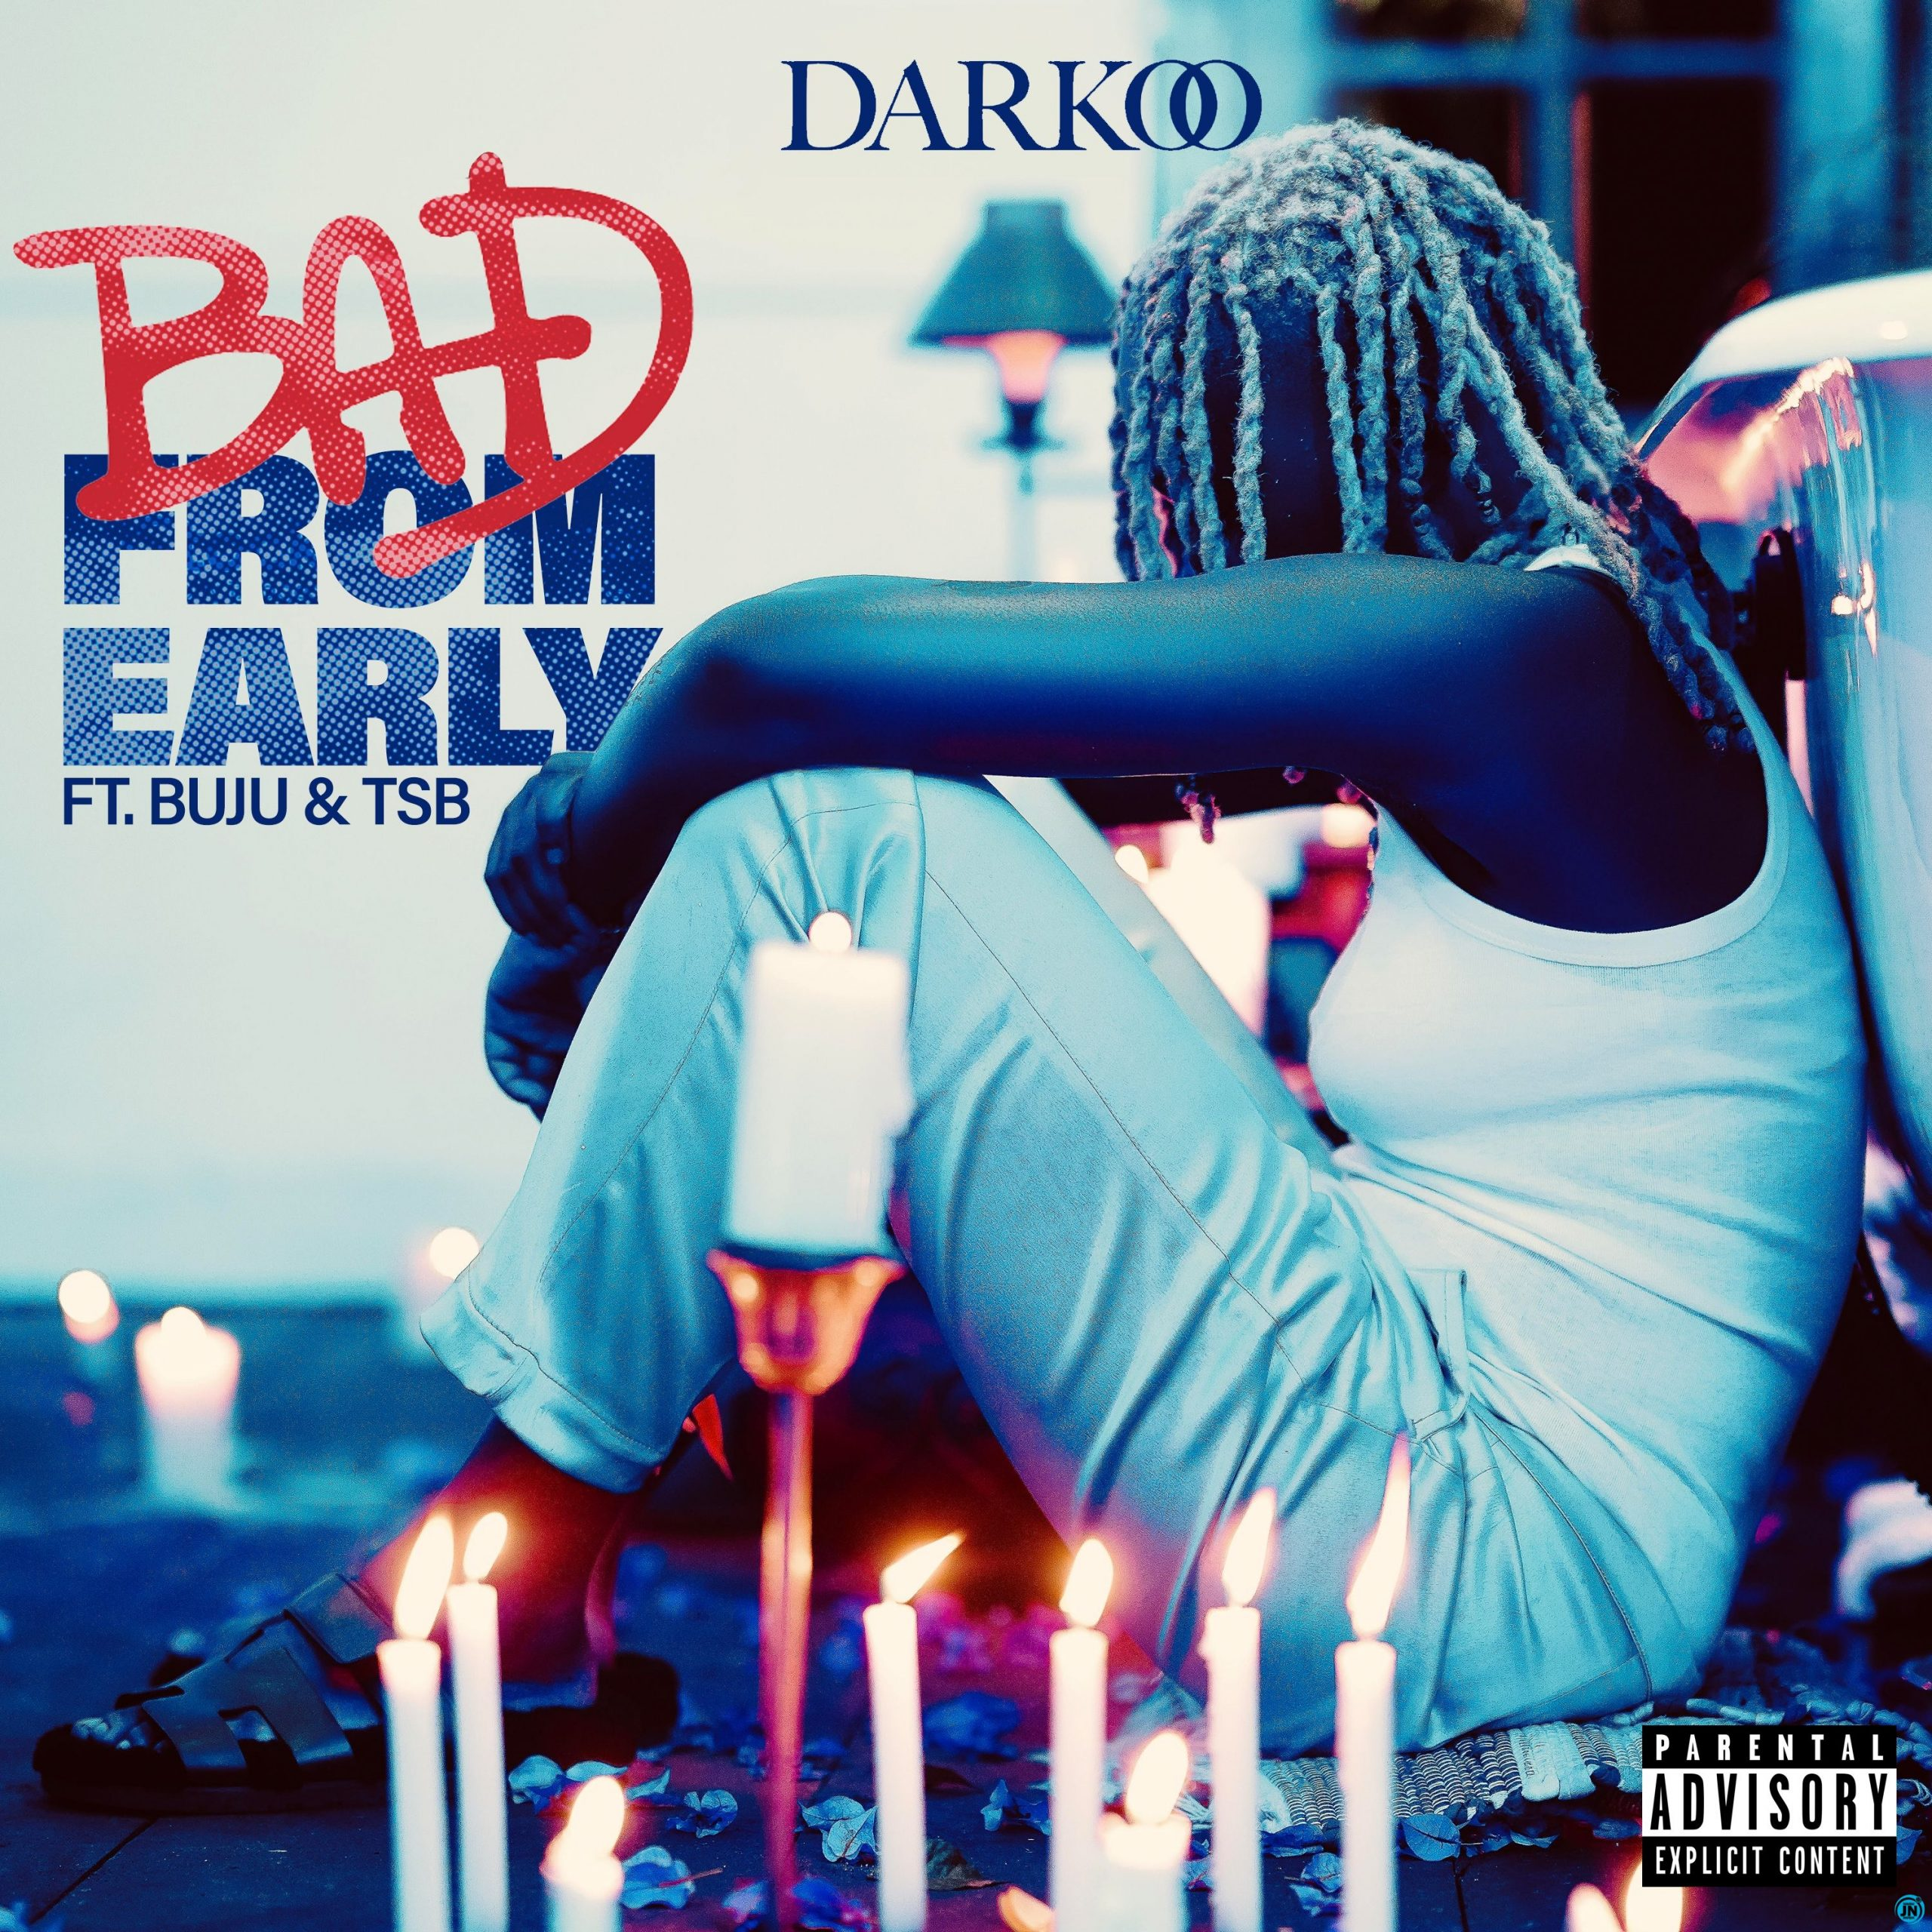 """DOWNLOAD AUDIO MP3: """"Bad From Early"""" song by Darko ft Buju & TSB"""